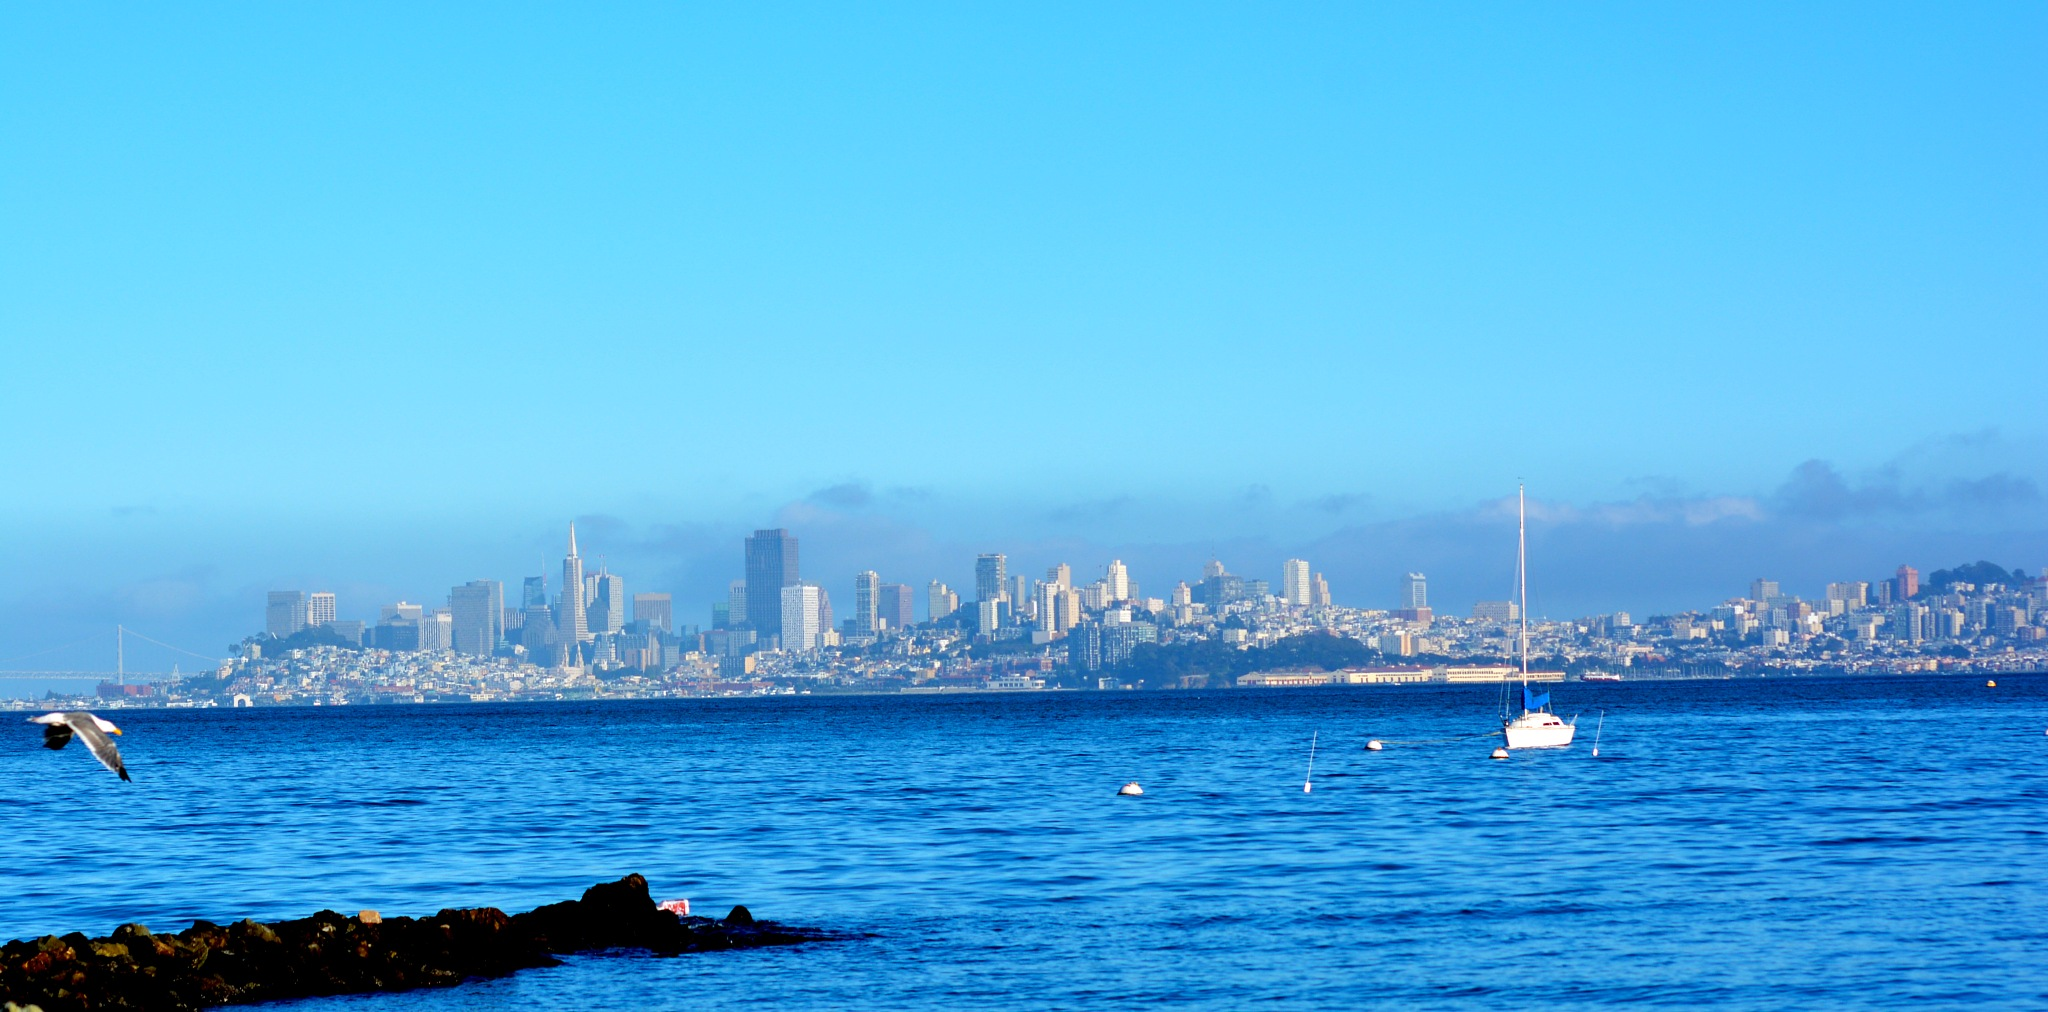 City by the Bay by HKS Images